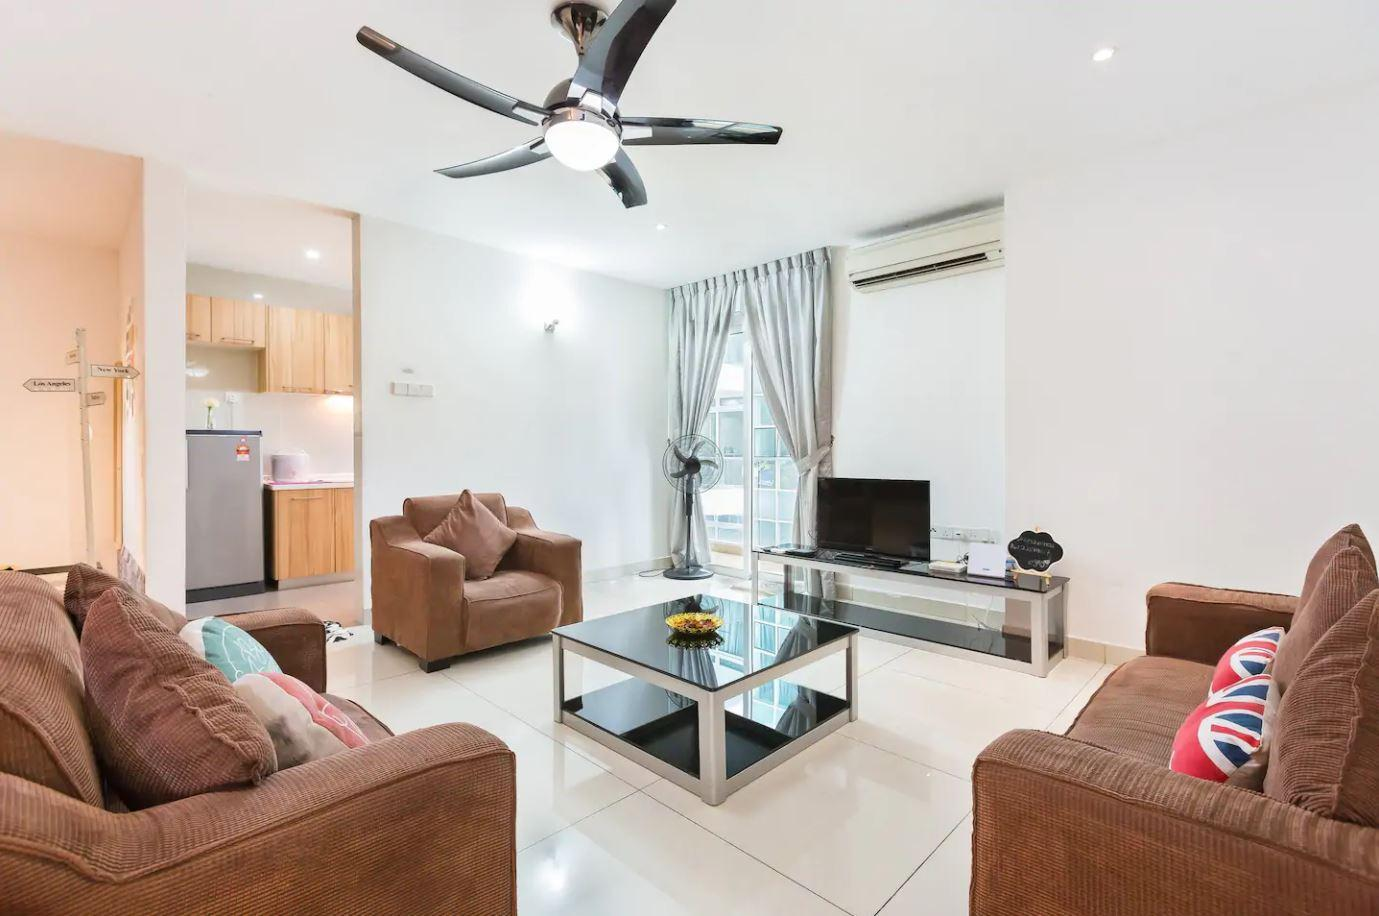 Sunset View Family Suite Up To 8 Pax